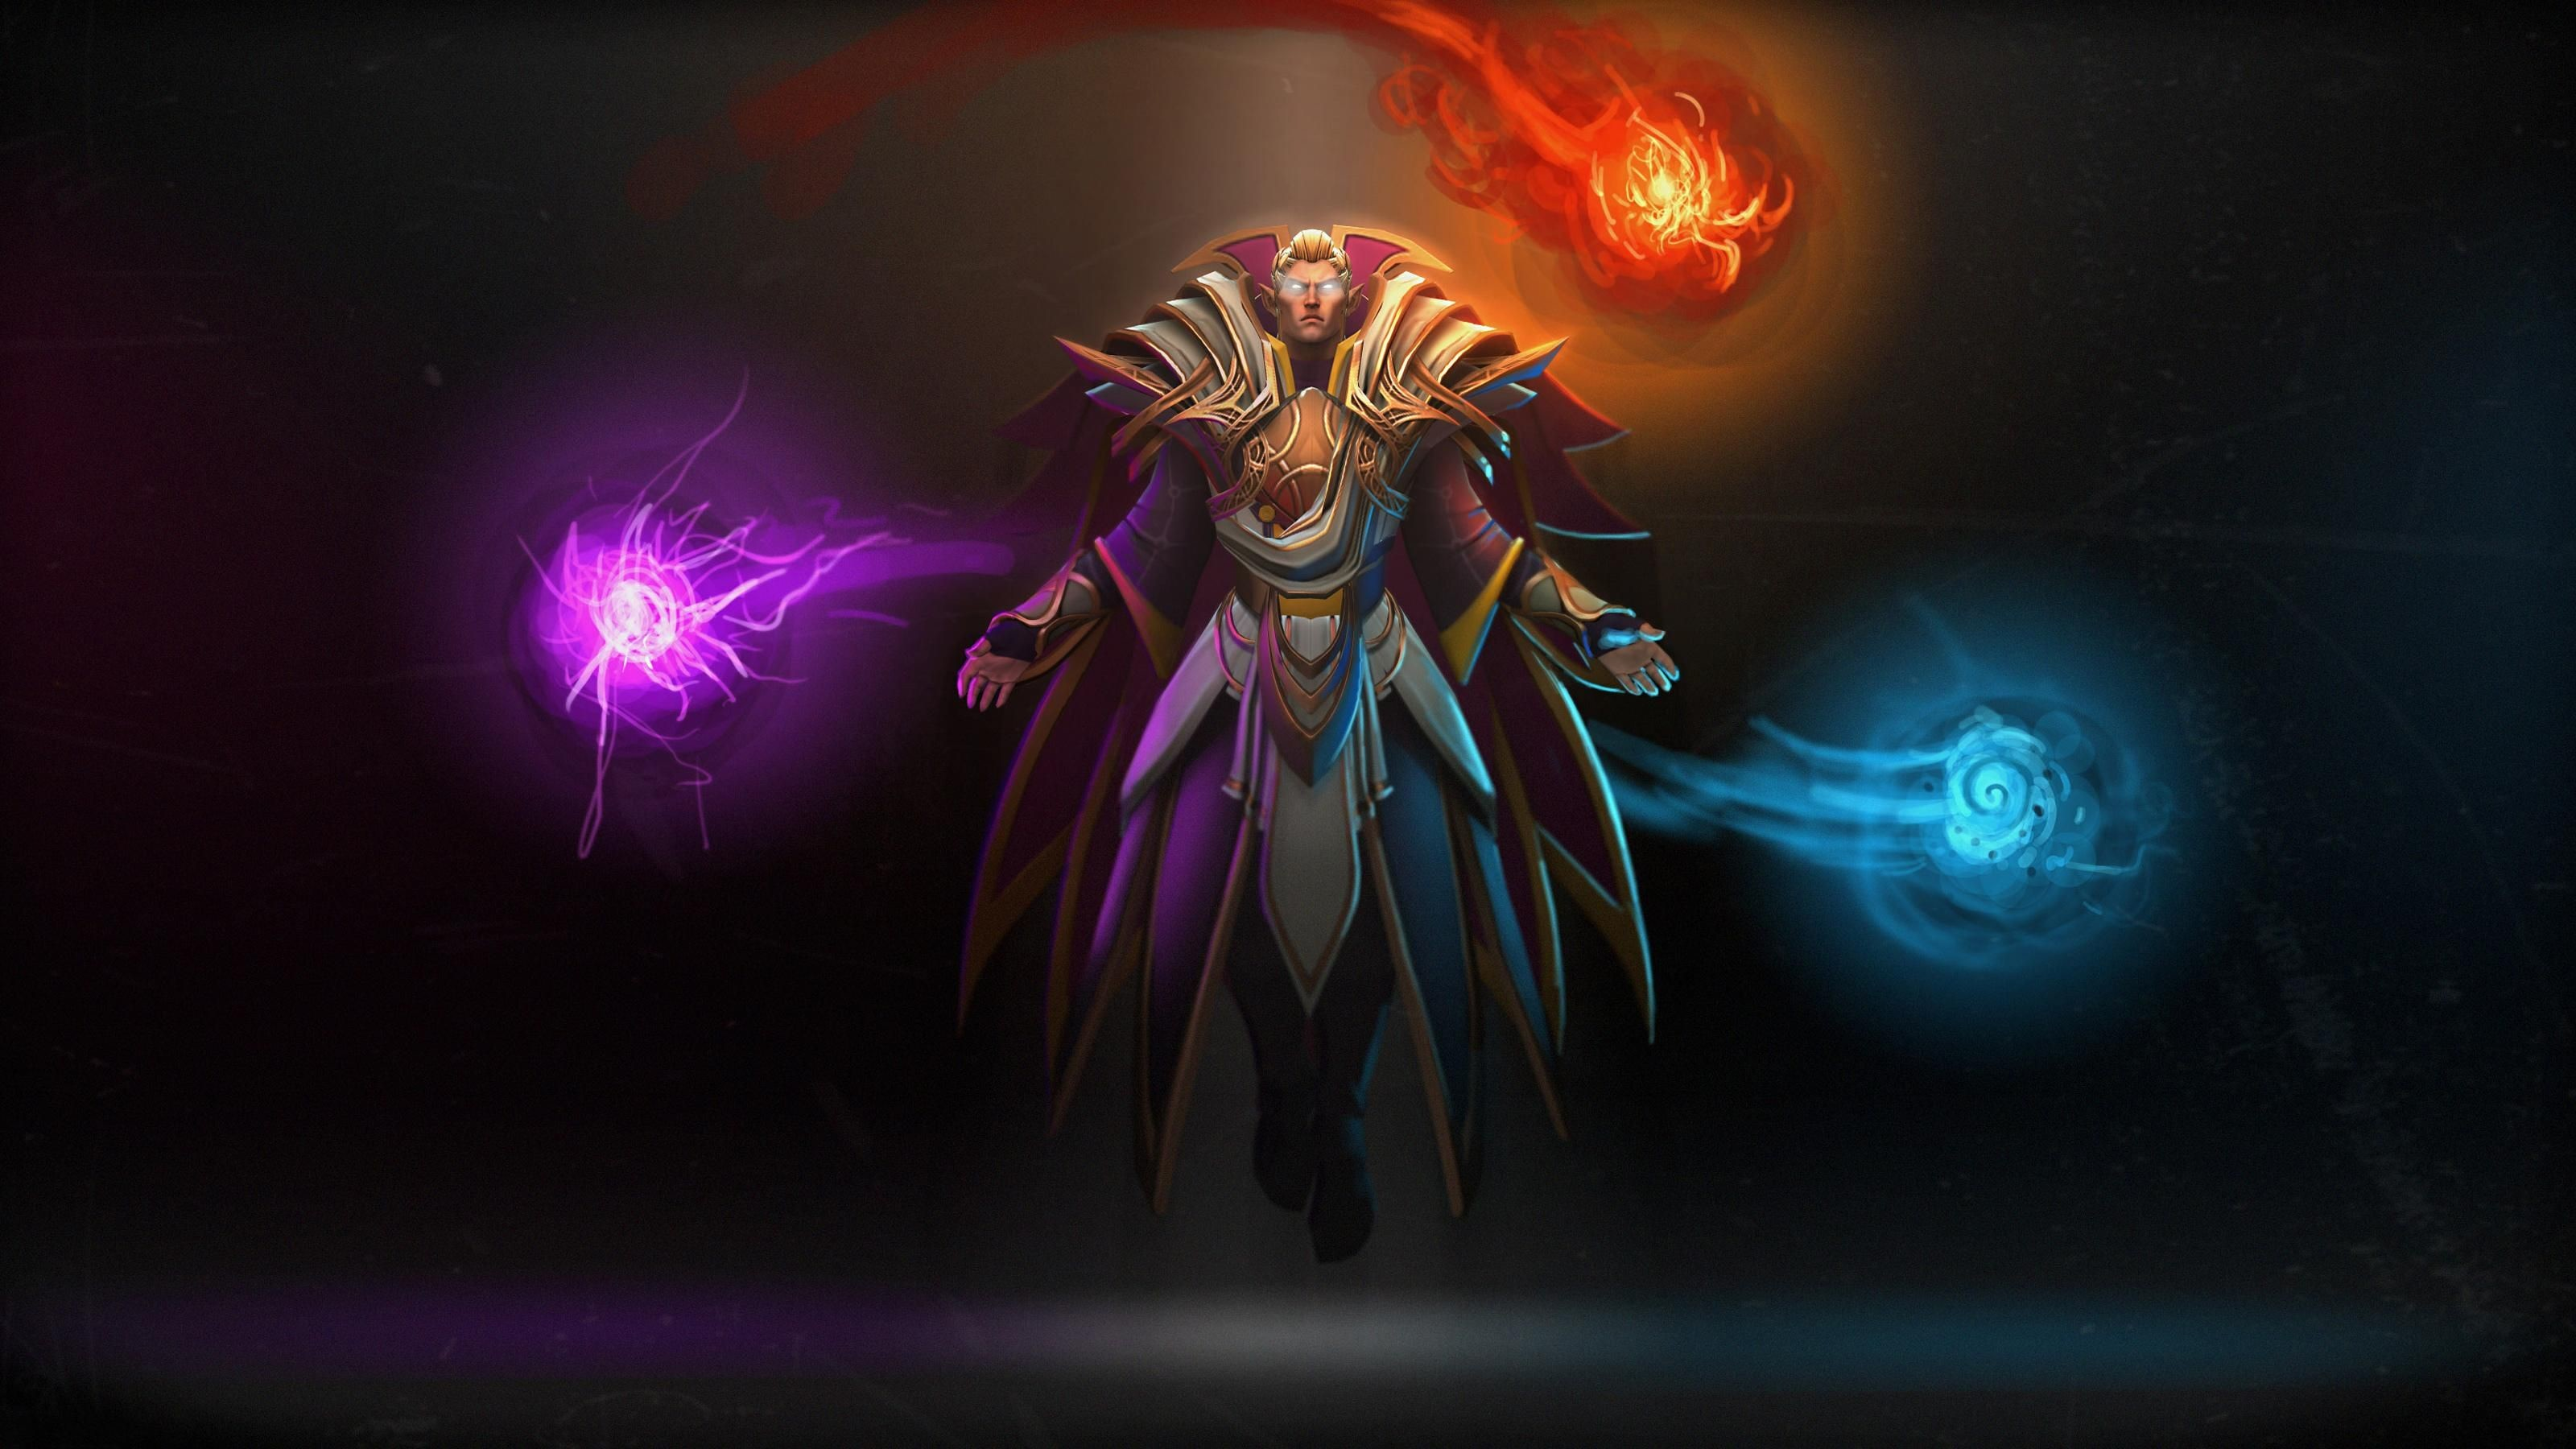 Res: 3200x1800, Dota 2 Invoker Wallpaper Background with High Definition Wallpaper   px 468.92 KB